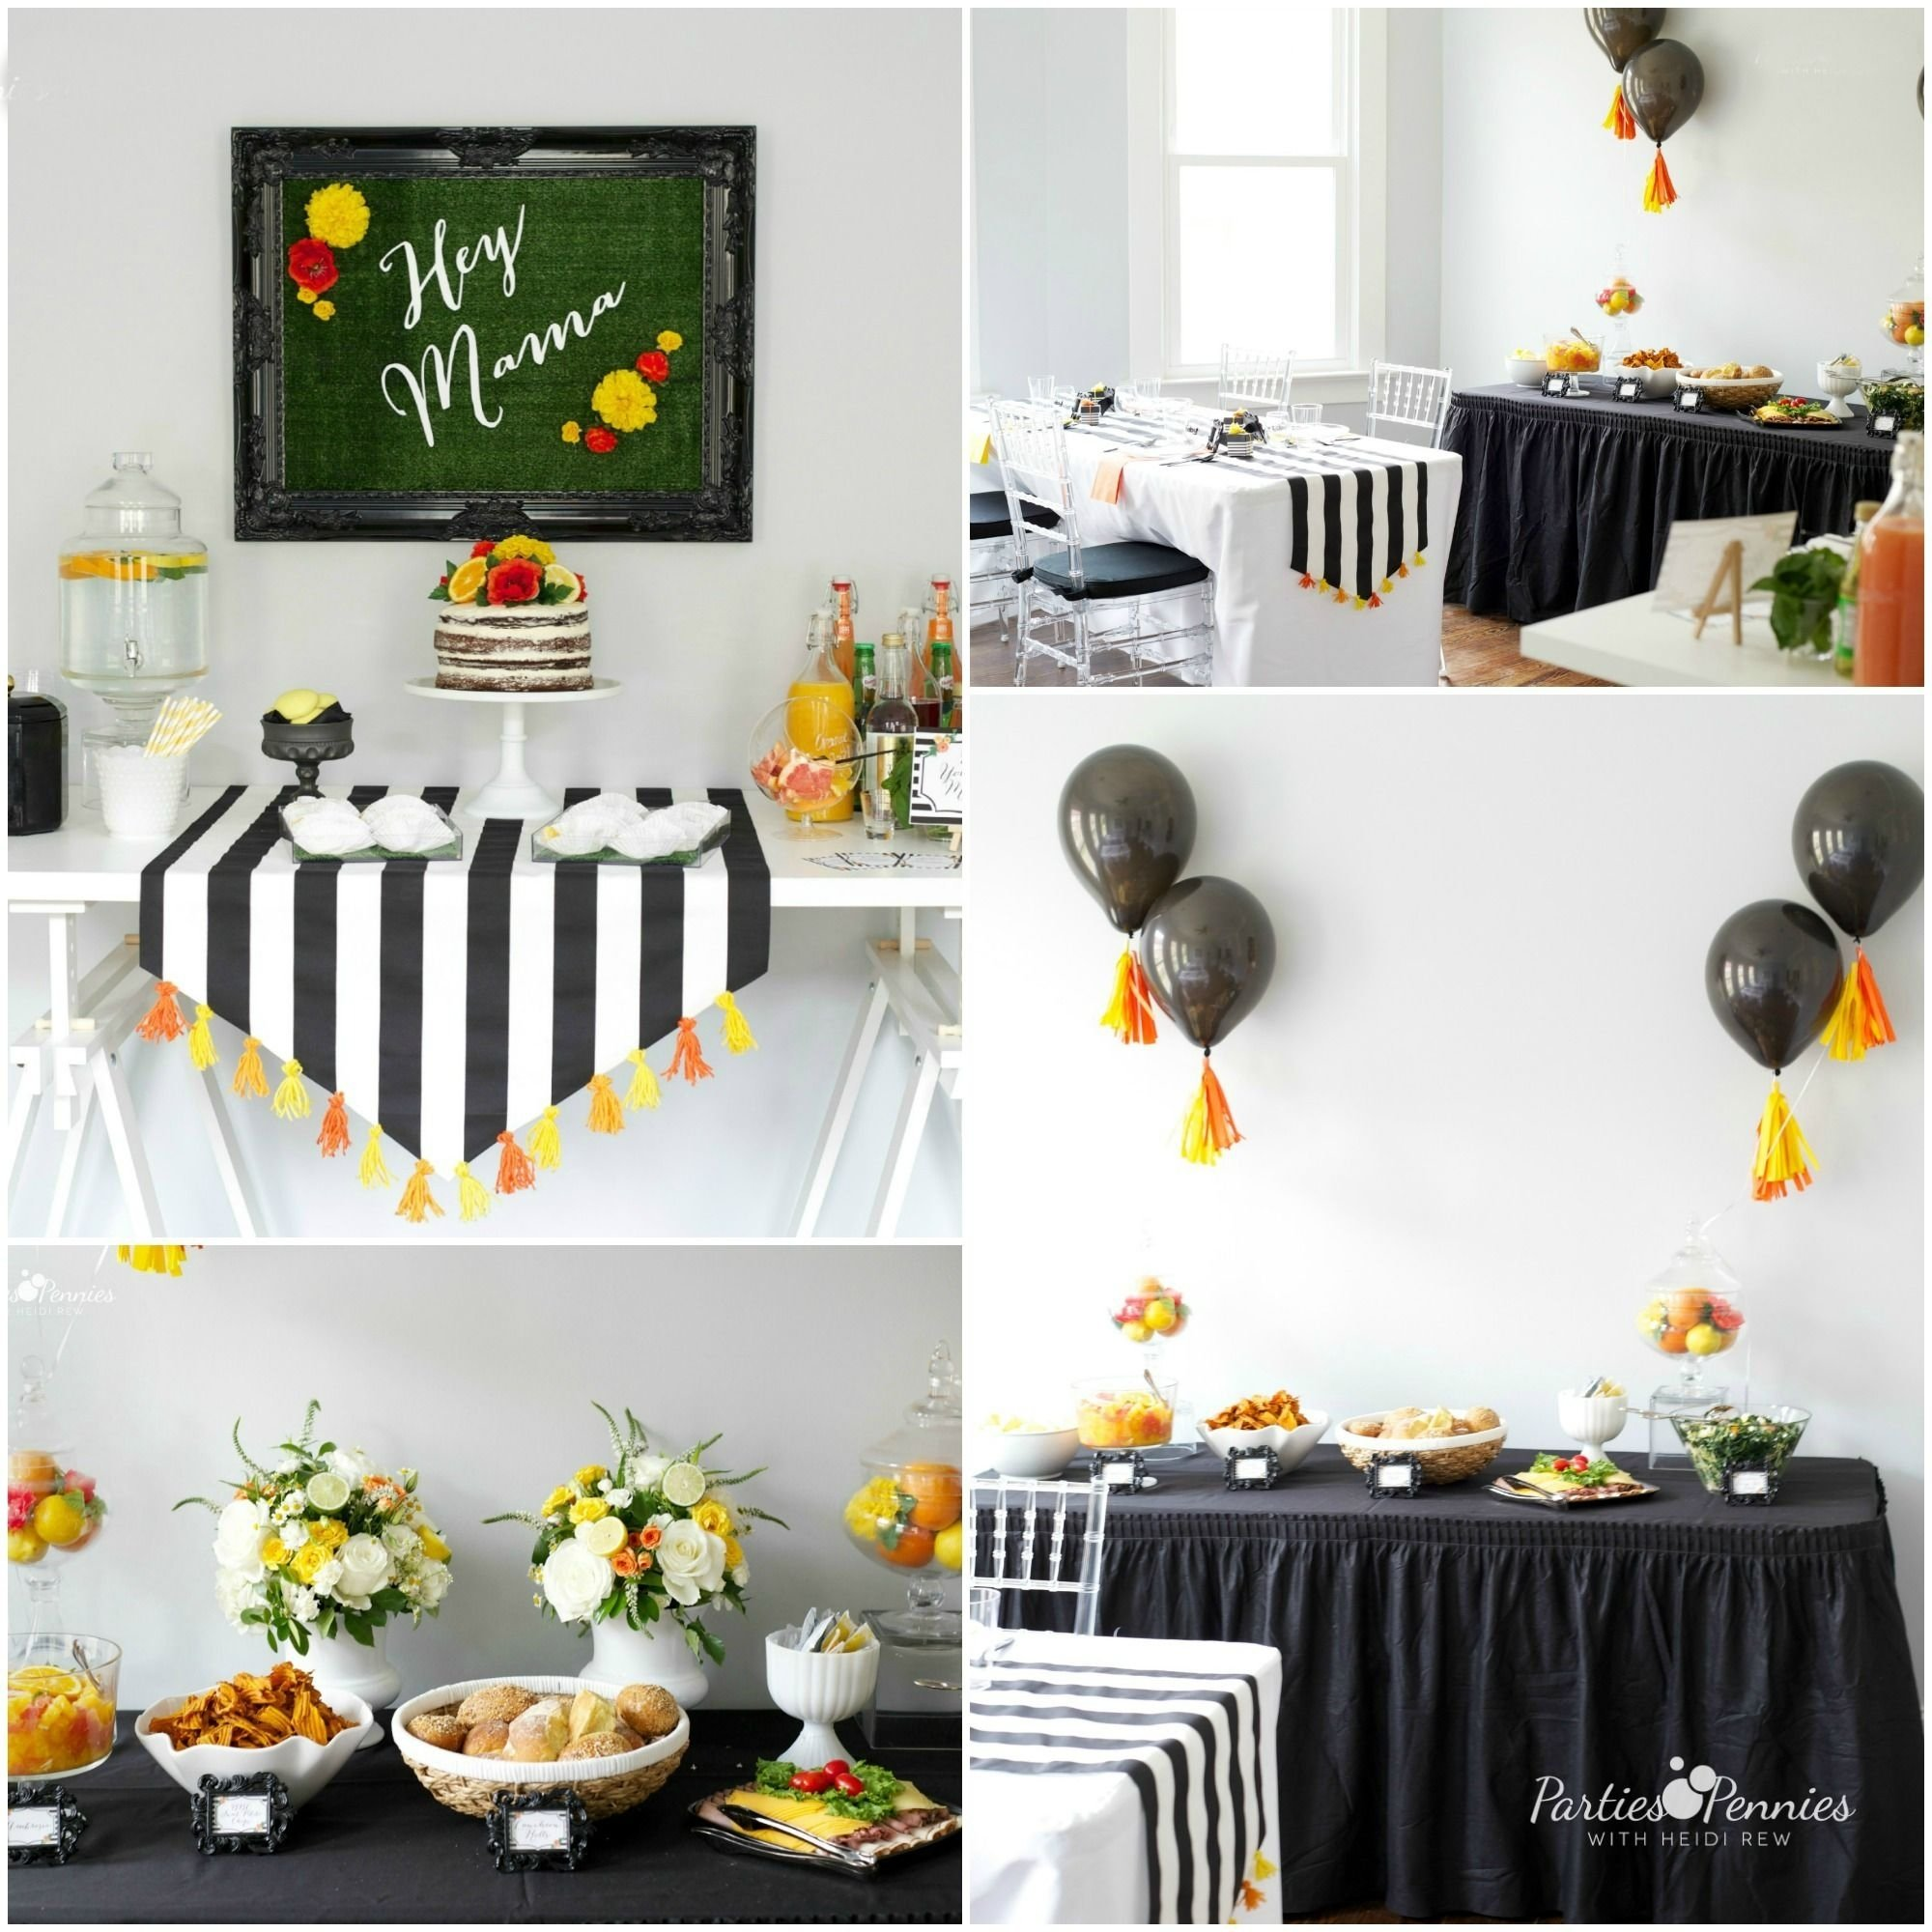 10 Great Black And White Baby Shower Ideas this black and white baby shower theme with pops of yellow and 2021